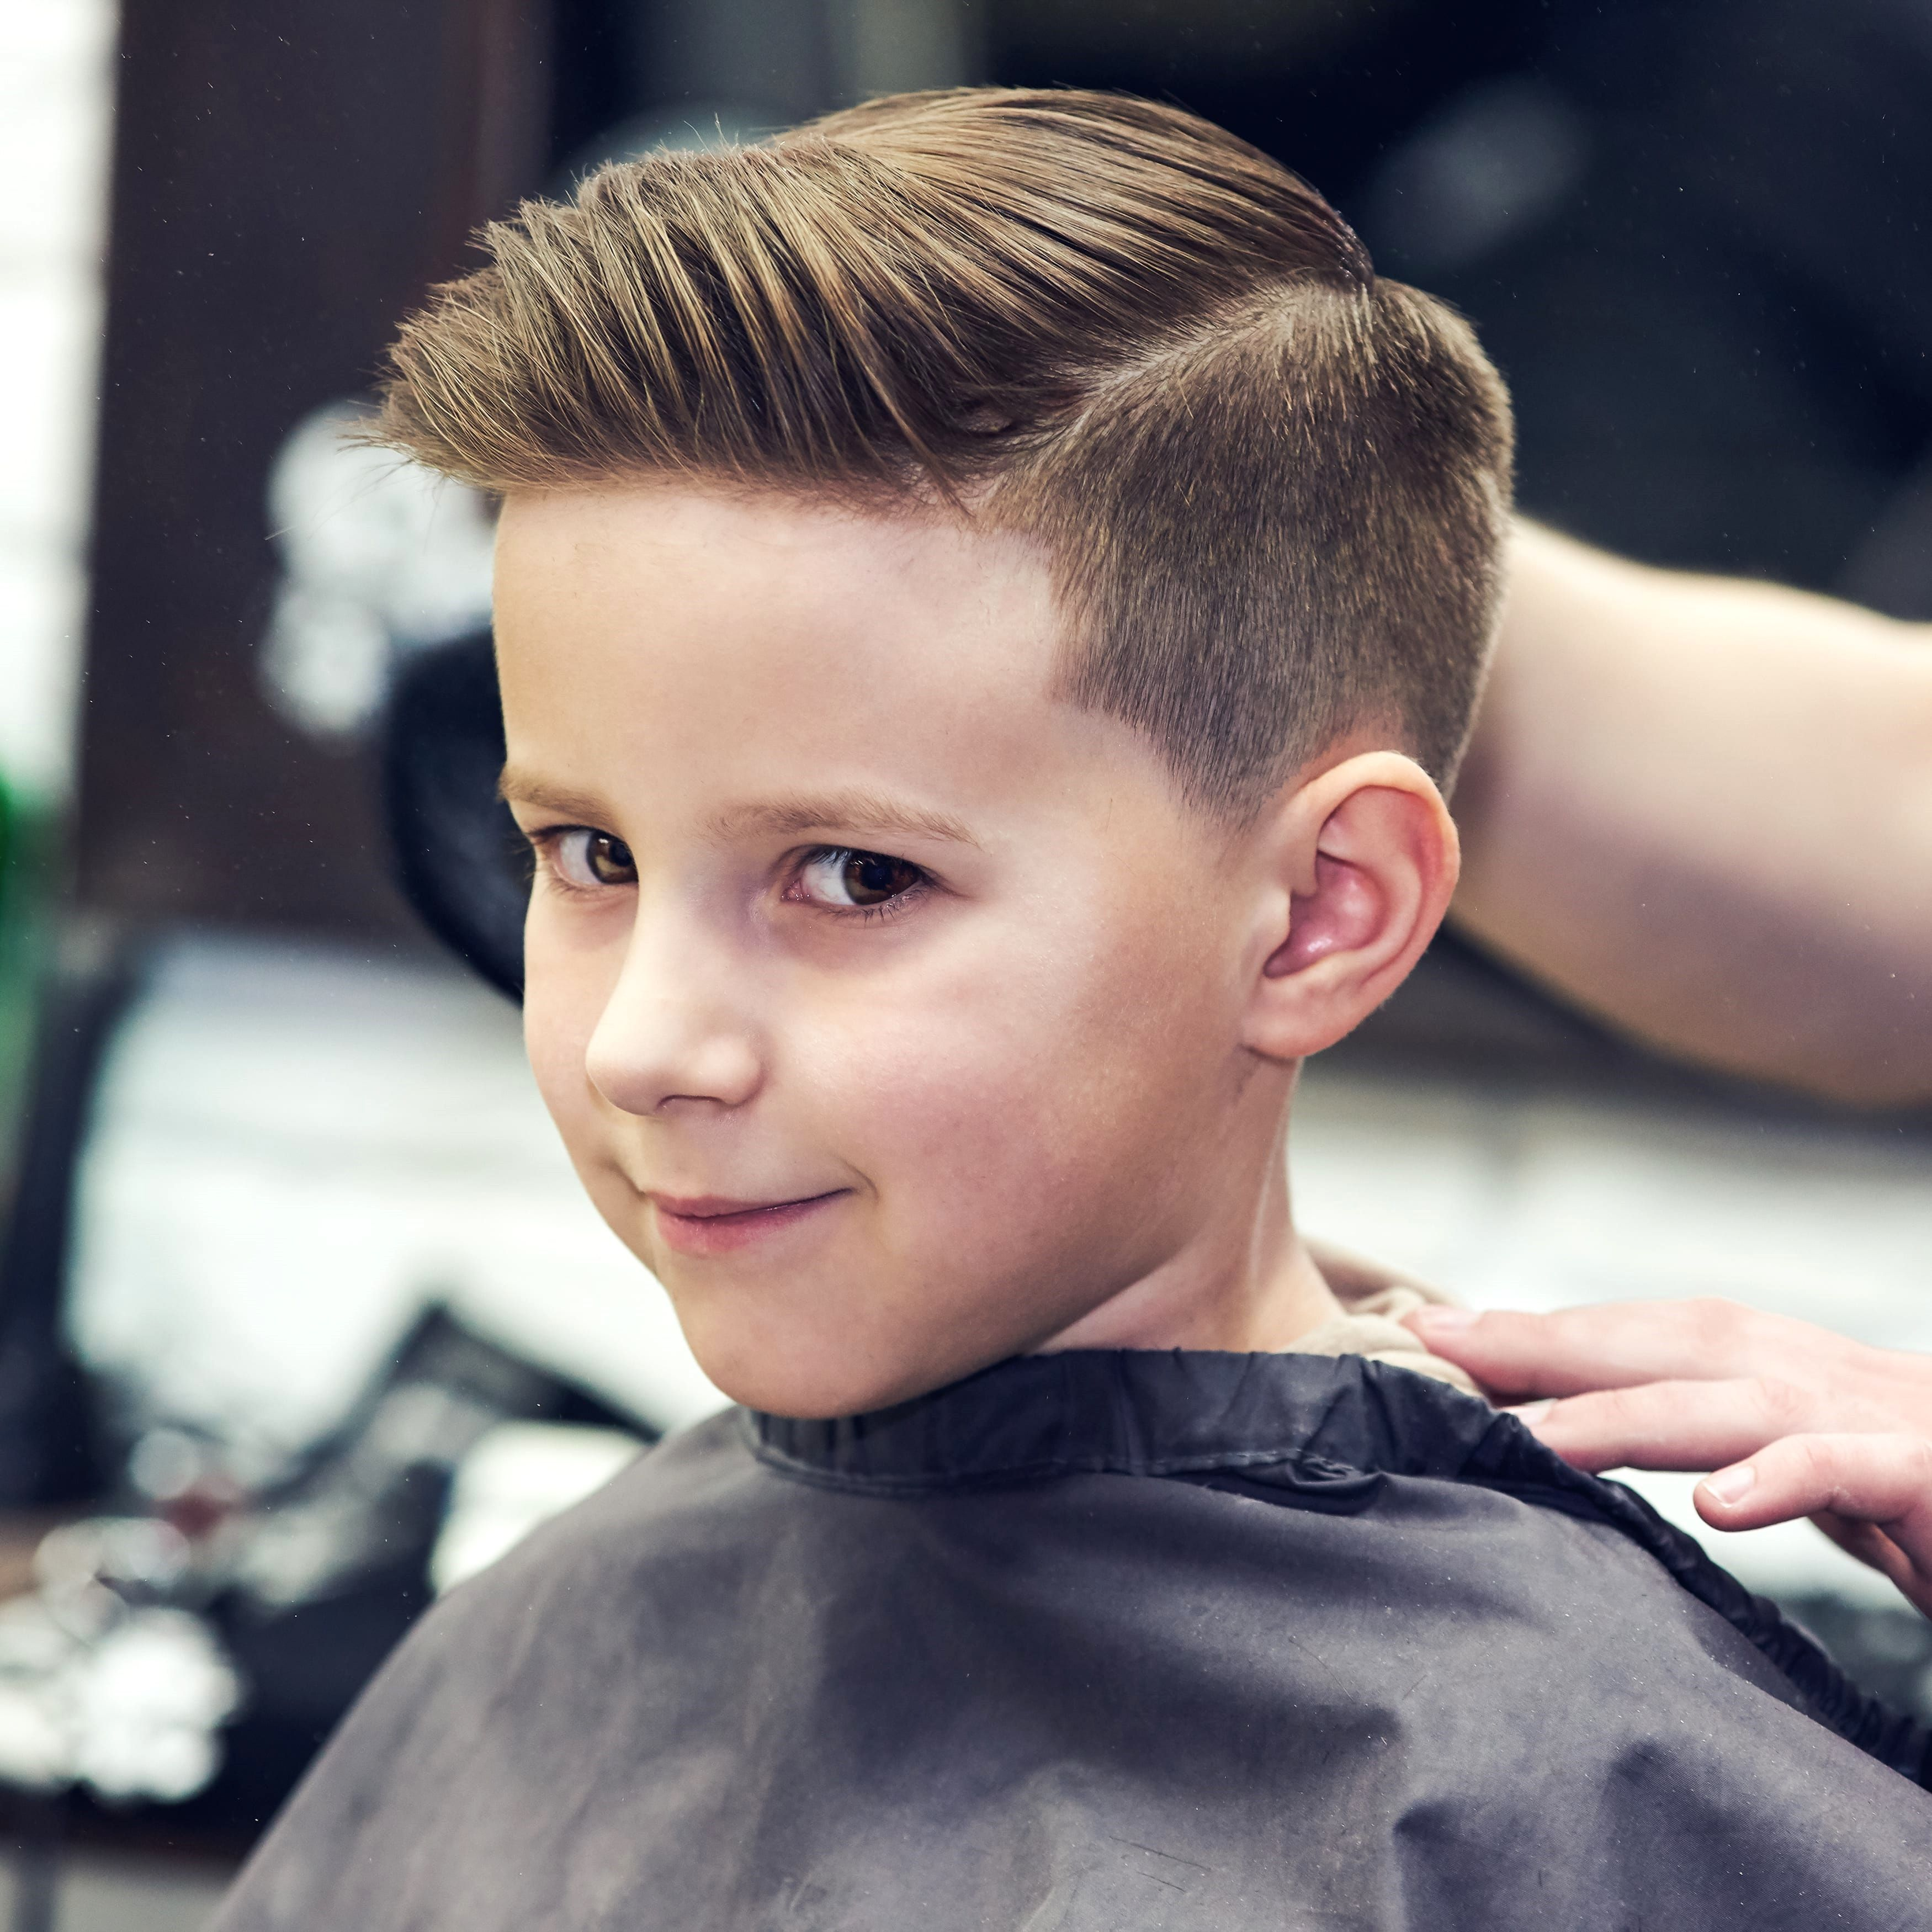 Hairstyle Games For Boys Trick in 2020